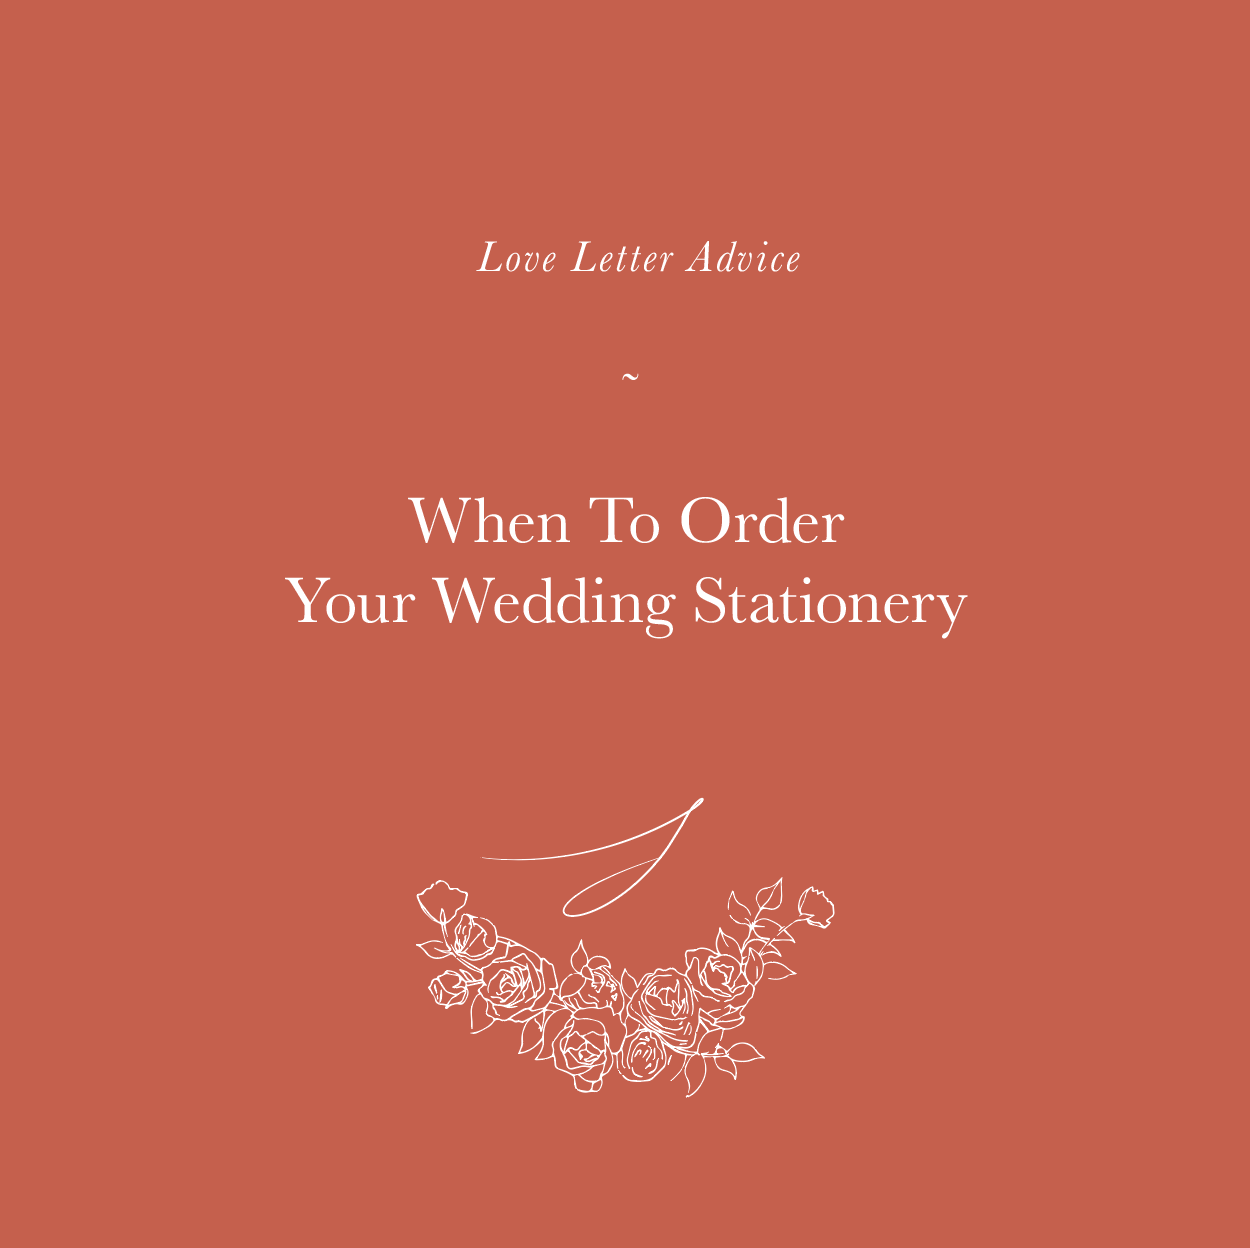 When To Order Your Wedding Stationery